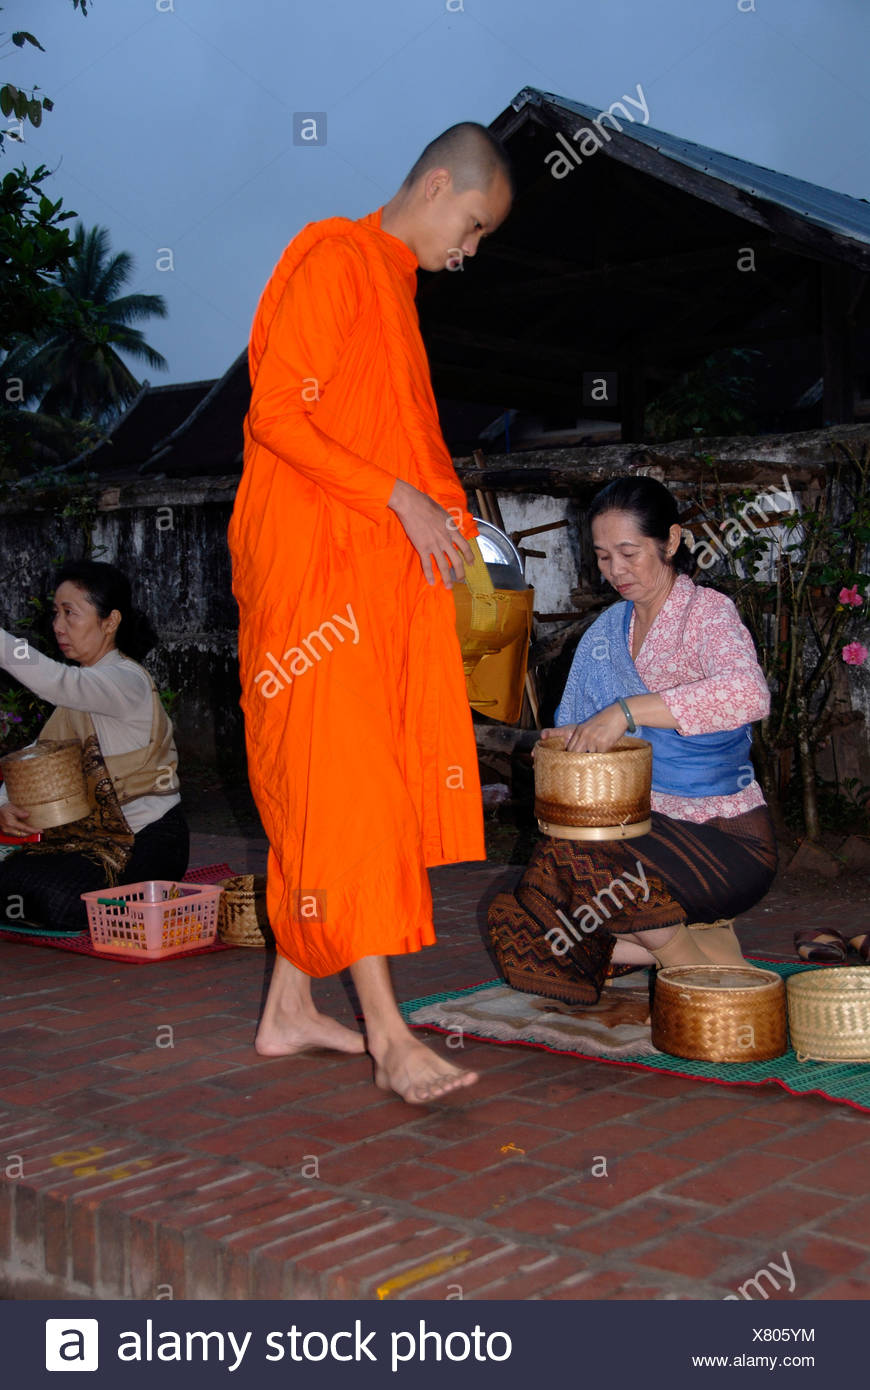 Buddhist monk with begging bowl receiving rice in the morning, Luang Prabang, Laos, Southeast Asia - Stock Image